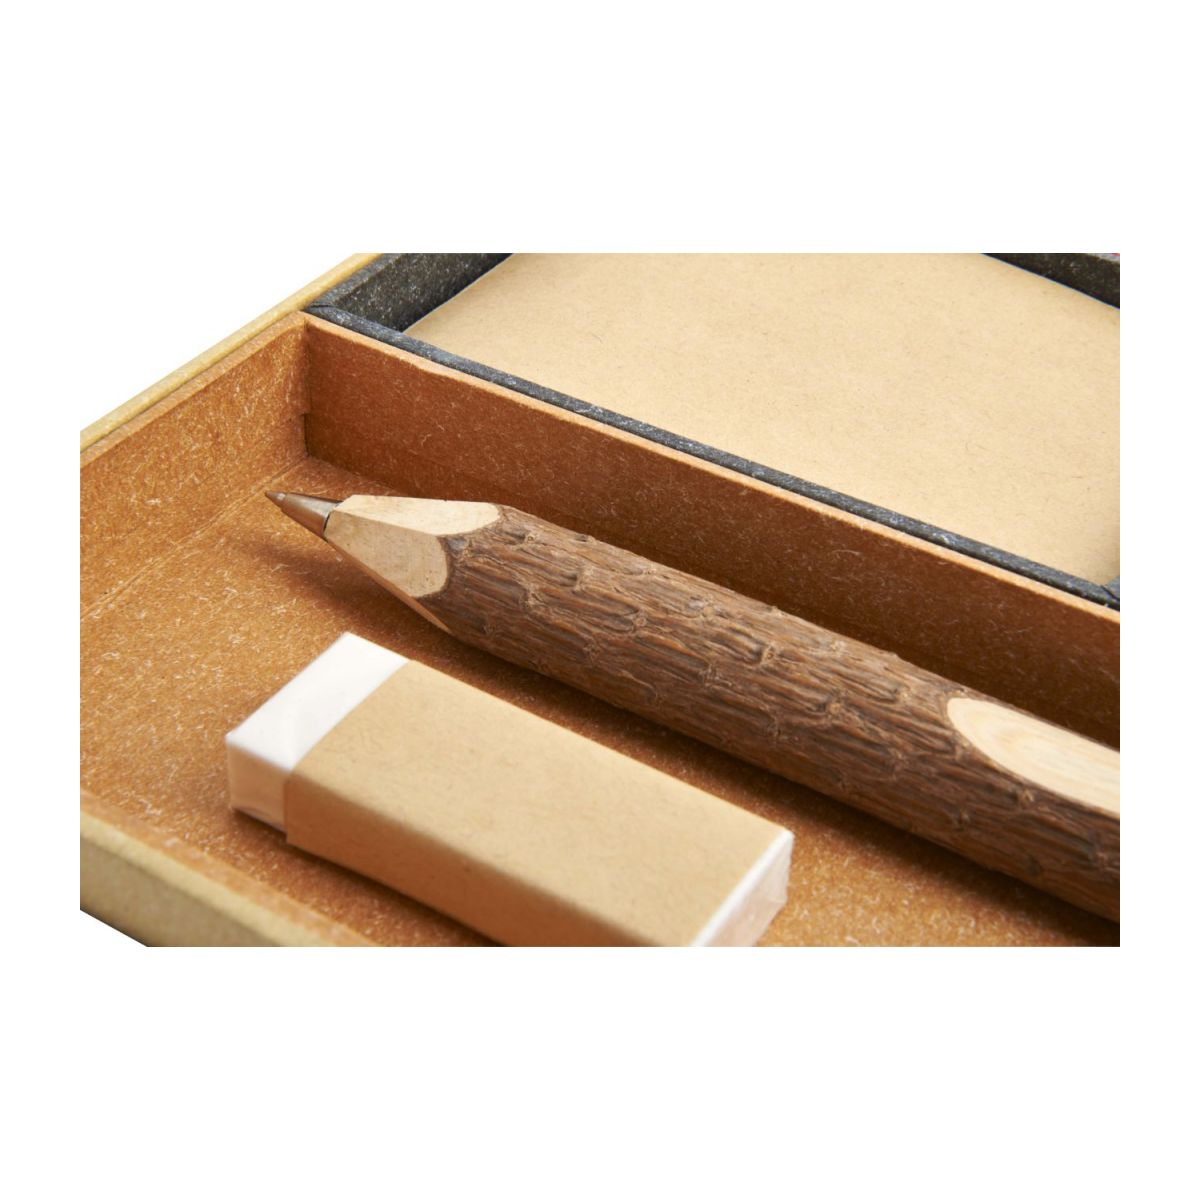 Stationery box (10 pieces) n°7